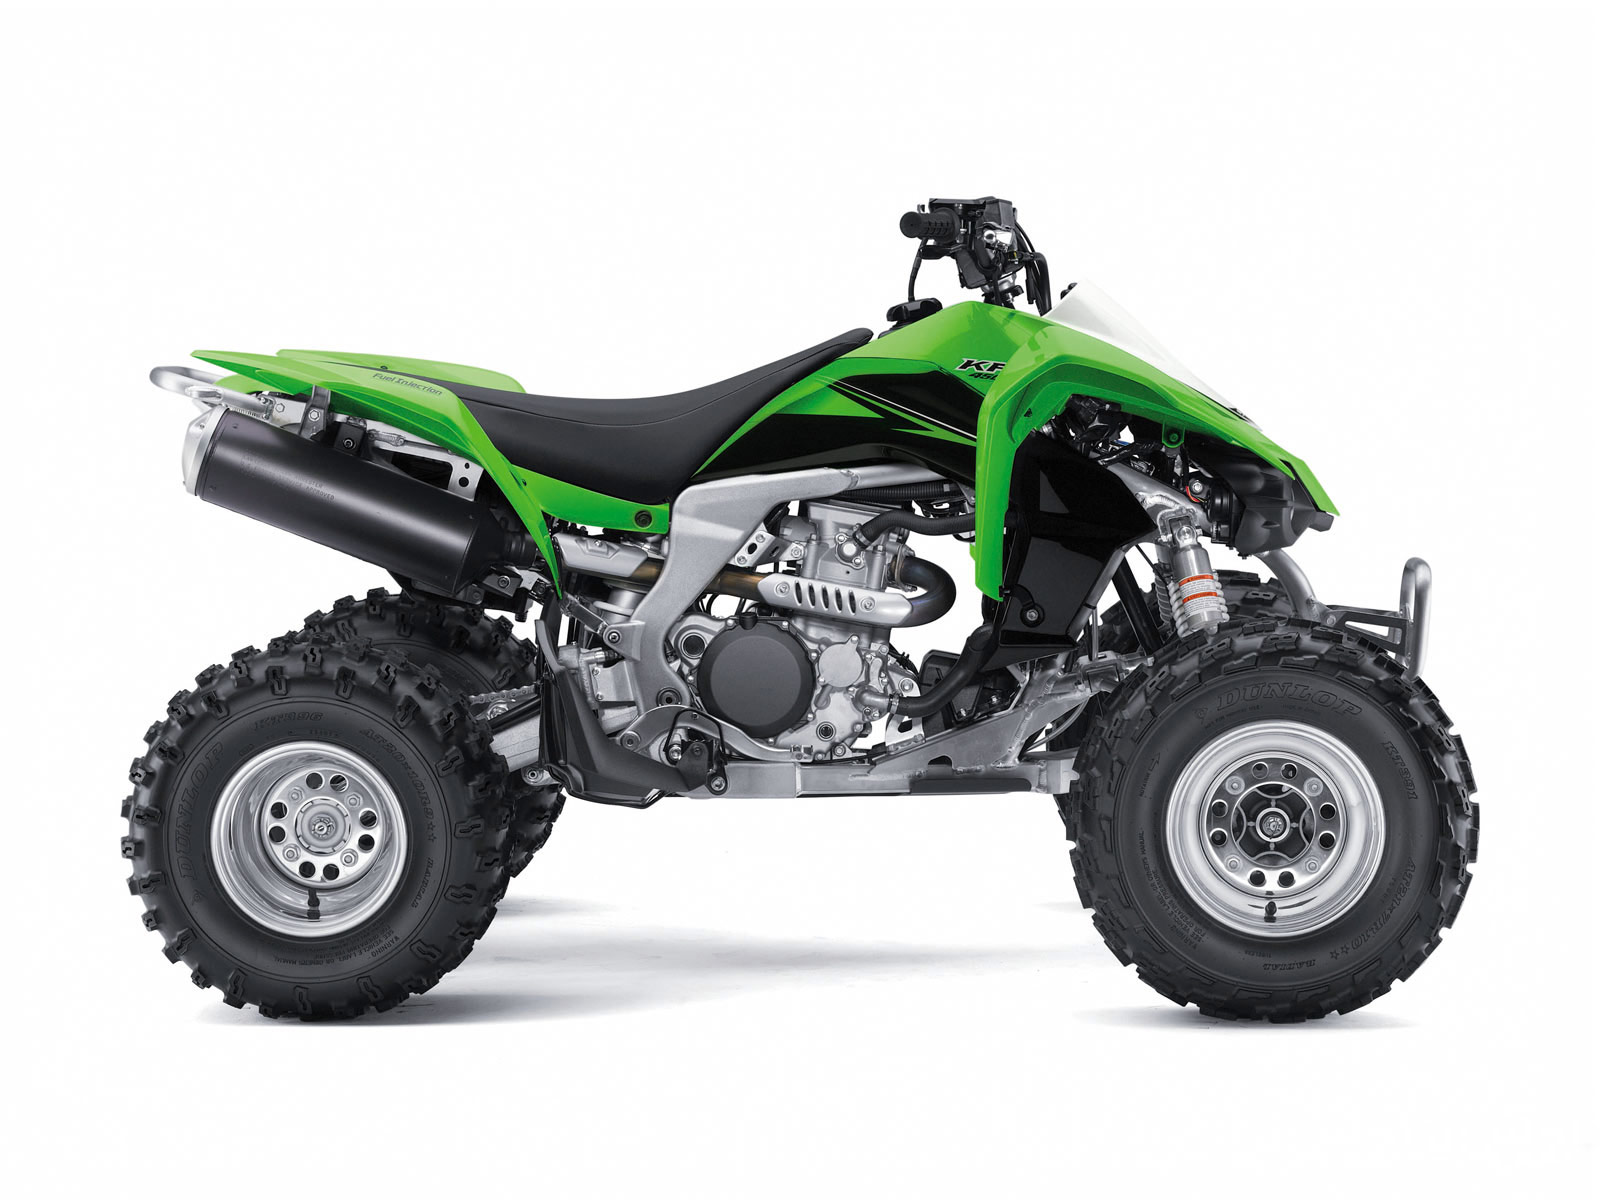 small resolution of kawasaki accident lawyers 2010 kfx 450r pictures specs